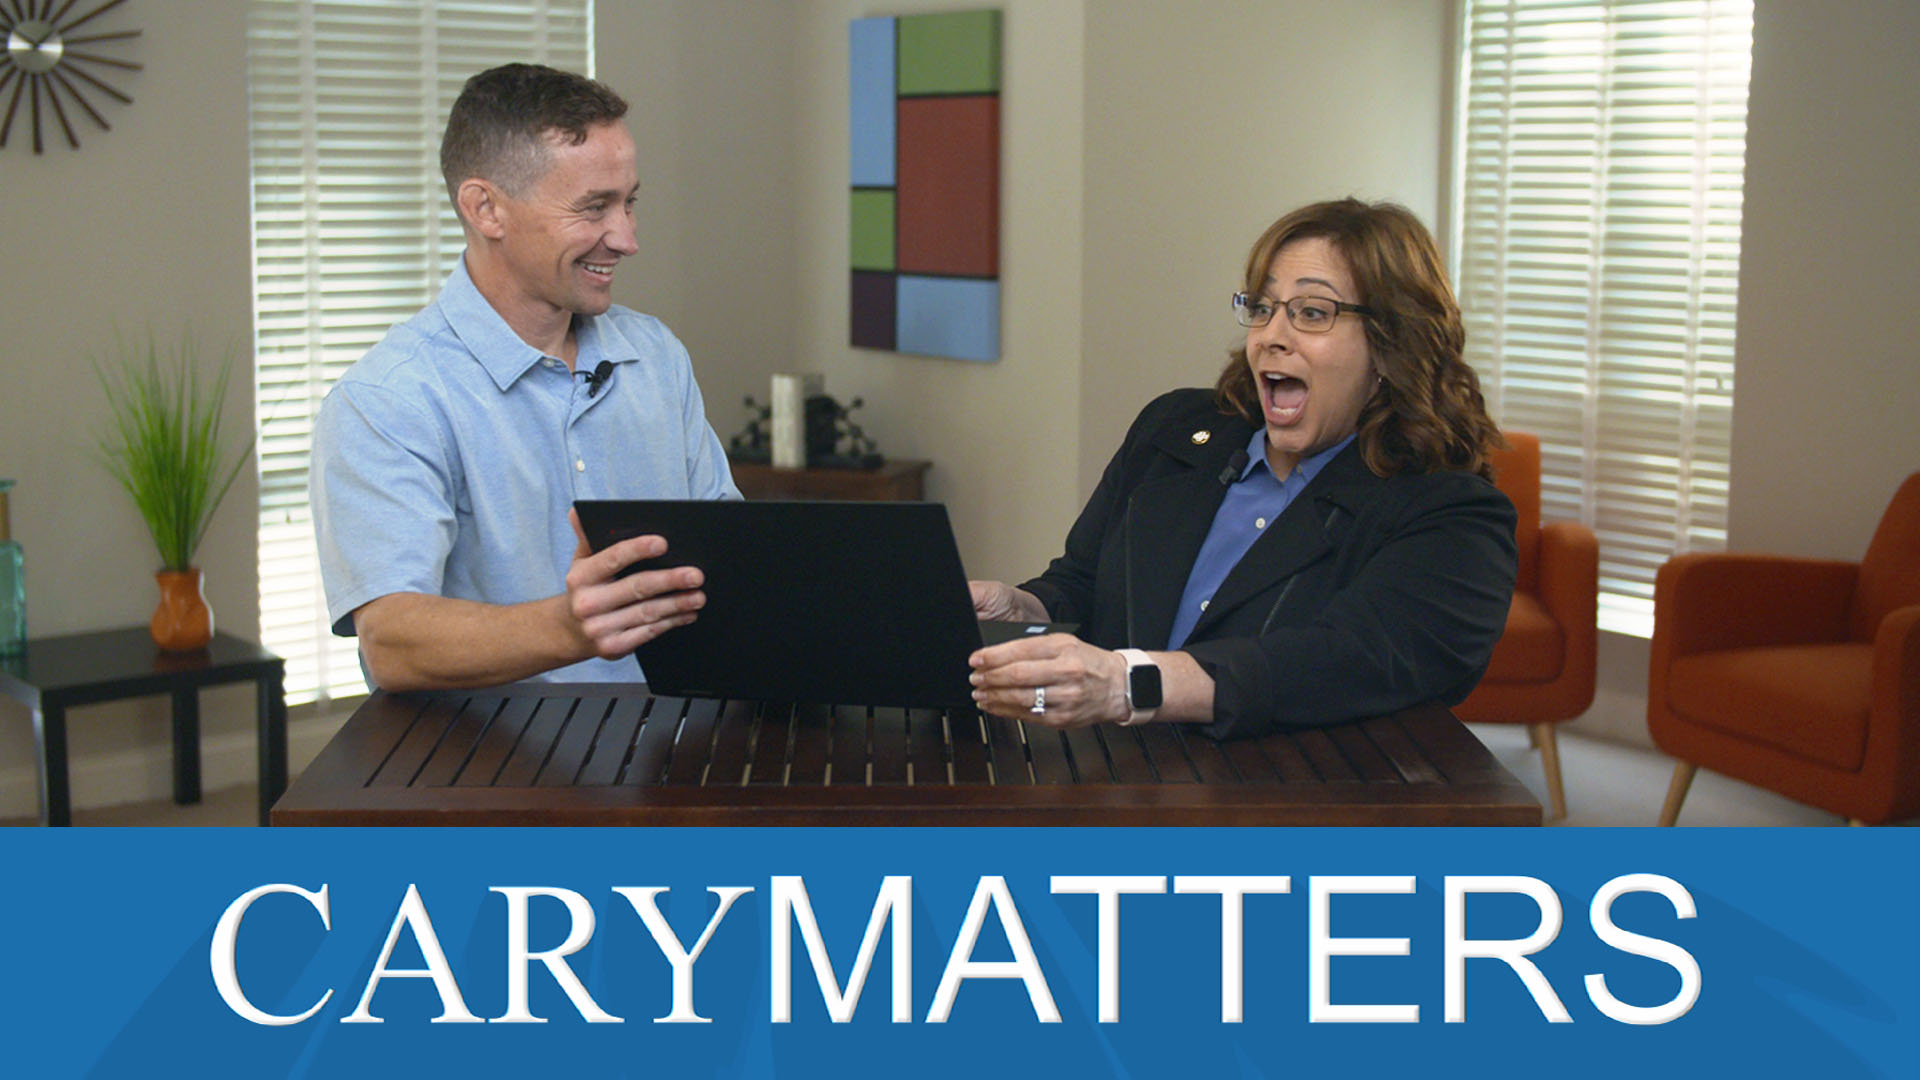 Cary Matters Hosts